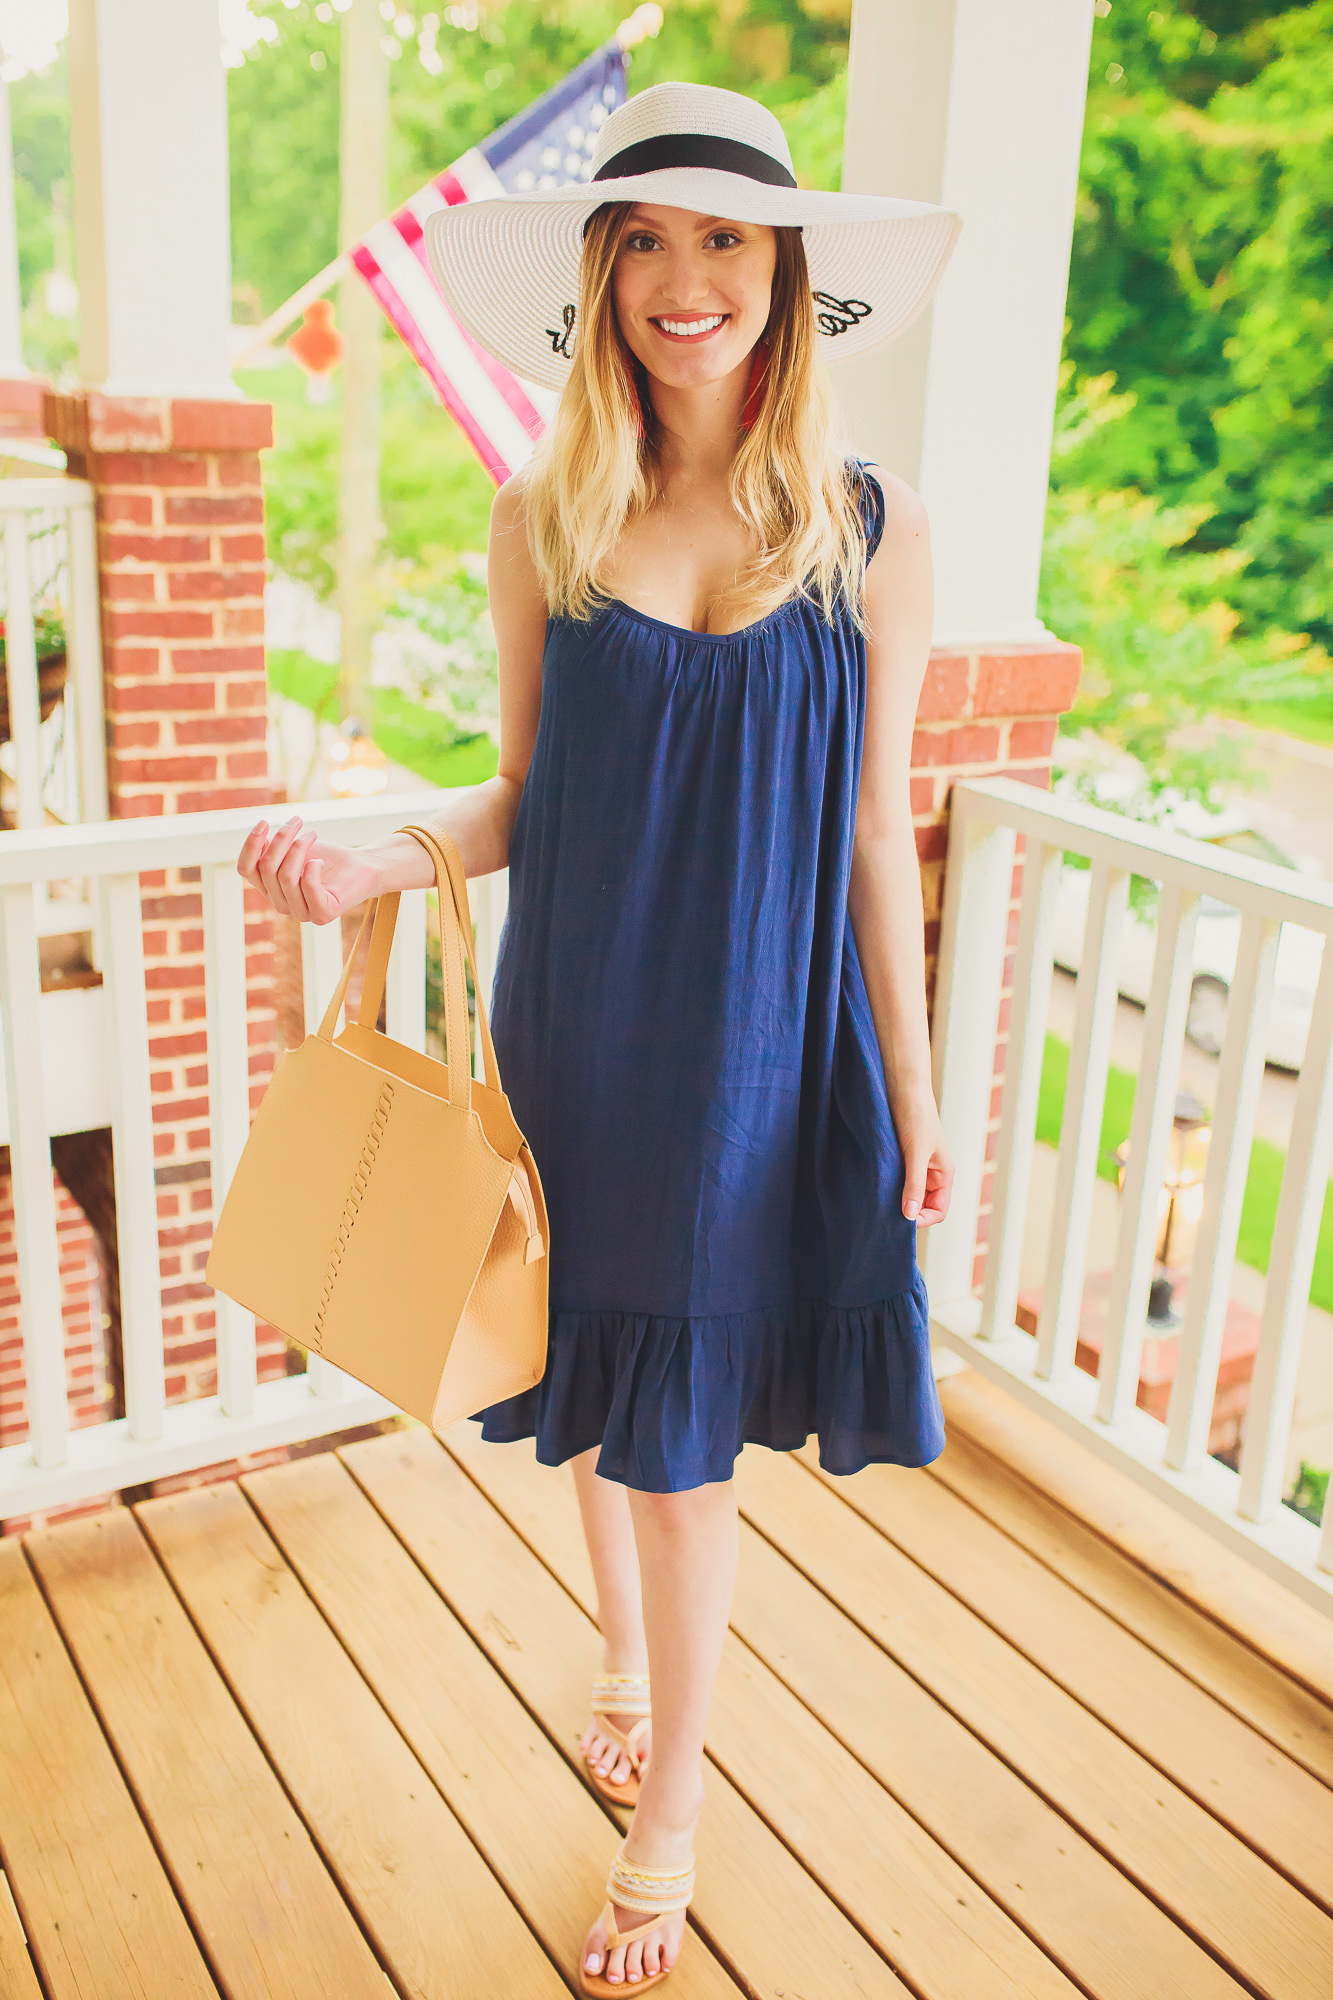 "What to Wear in The 4th of July | Fashion and lifestyle blogger Jessica Linn showing some Independence Day outfit inspiration and a cute red white and blue outfit in collaboration with local North Carolina business, Southern Chique Boutique. Navy blue spaghetti strap dress from Southern Chique Boutique, red tassel earrings and ""Do Not Disturb"" sun hat from Copper Bloom, purse by Universal Thread from Target, and sandals from Ross."